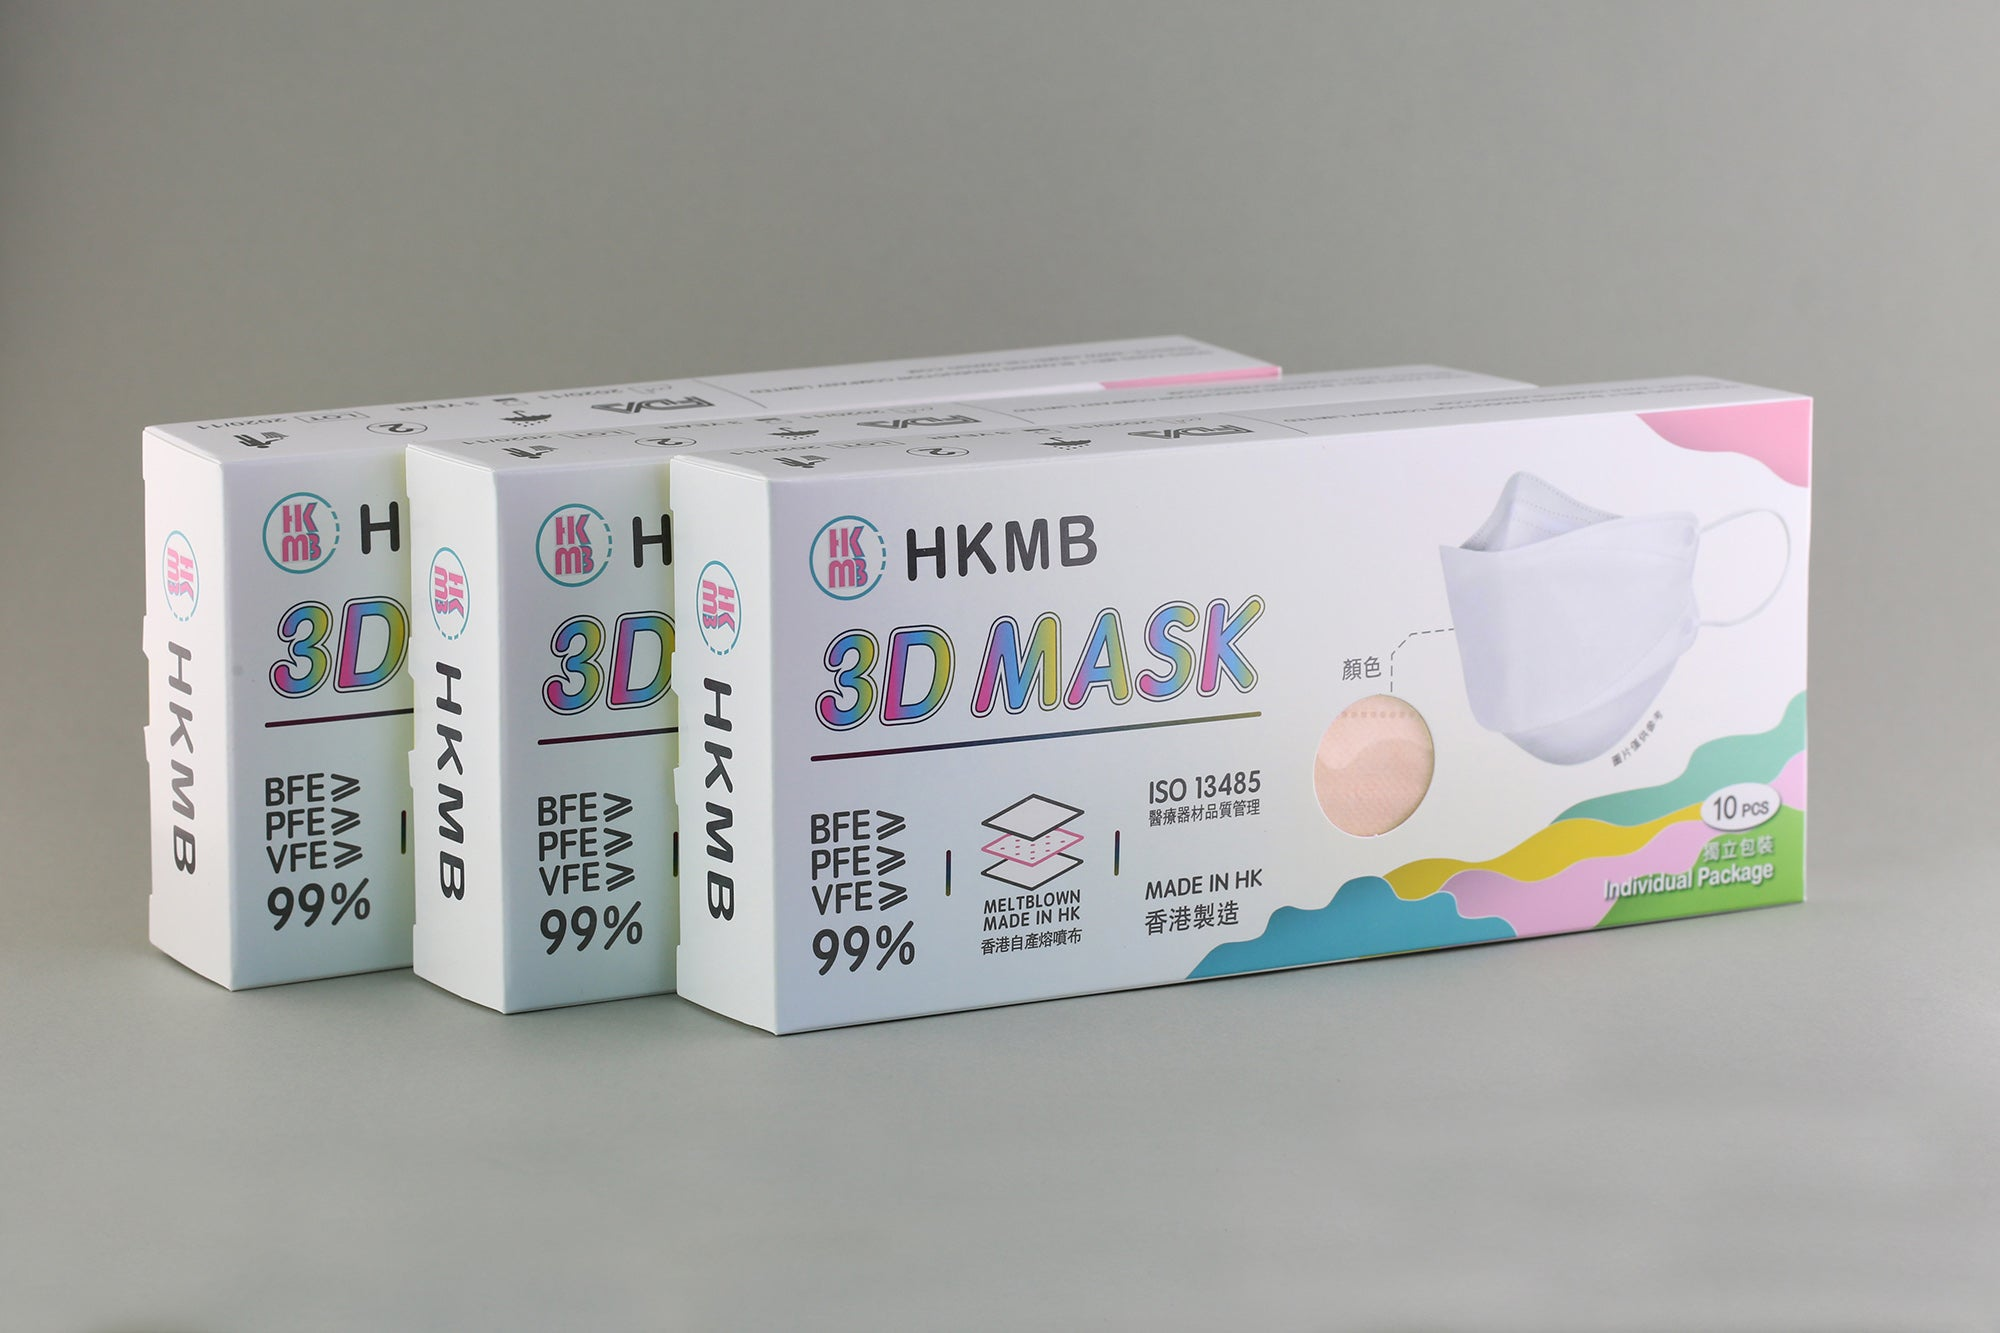 Carnation 3D Mask HKMB VFE99 10pcs/box【Made in Hong Kong】